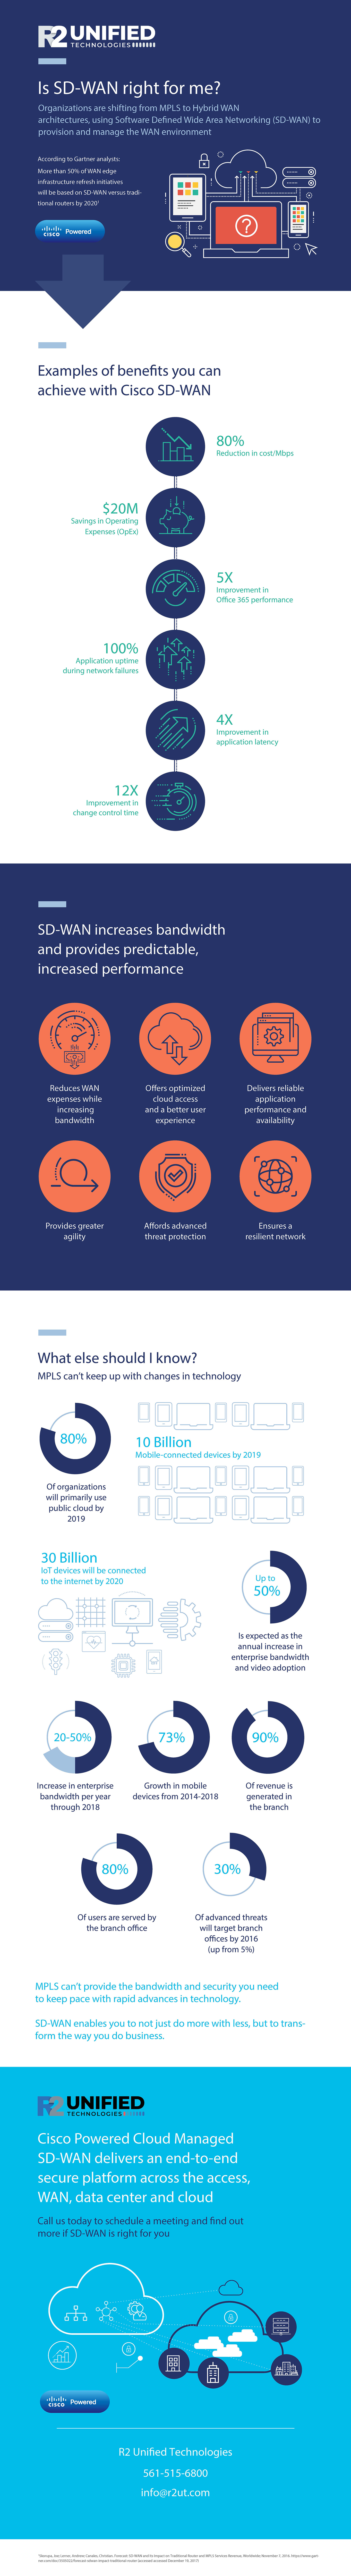 Is SD-WAN Right for Me? | SD-WAN Architecture Benefits | Infographic | R2 Unified Technologies